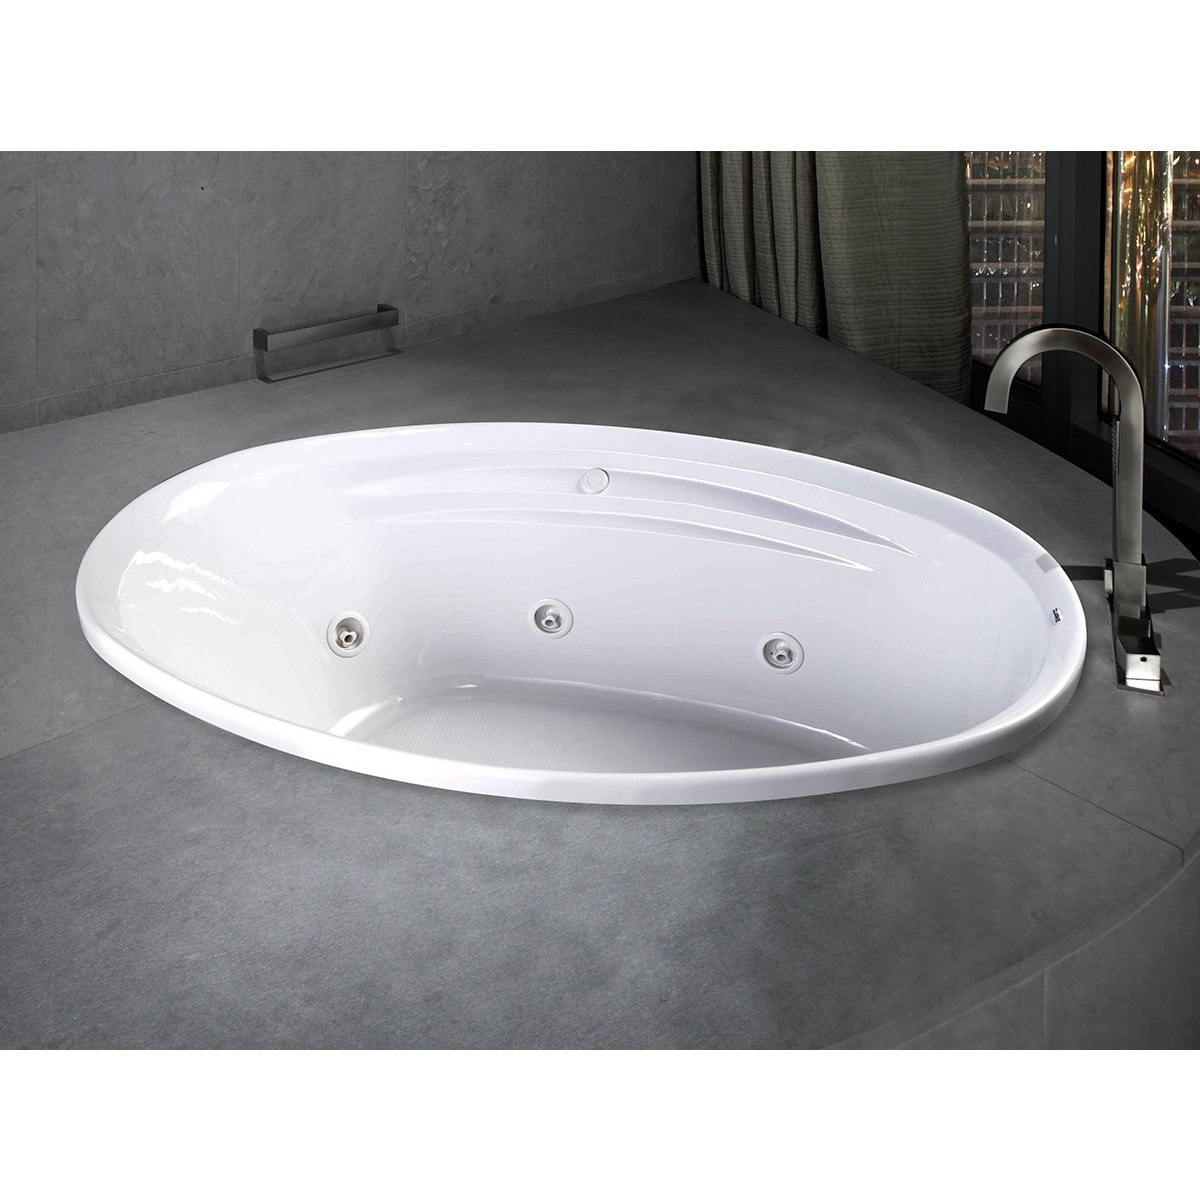 Clarke Products W3858C-01CMH Concentra 1 Whirlpool Tub - Free ...